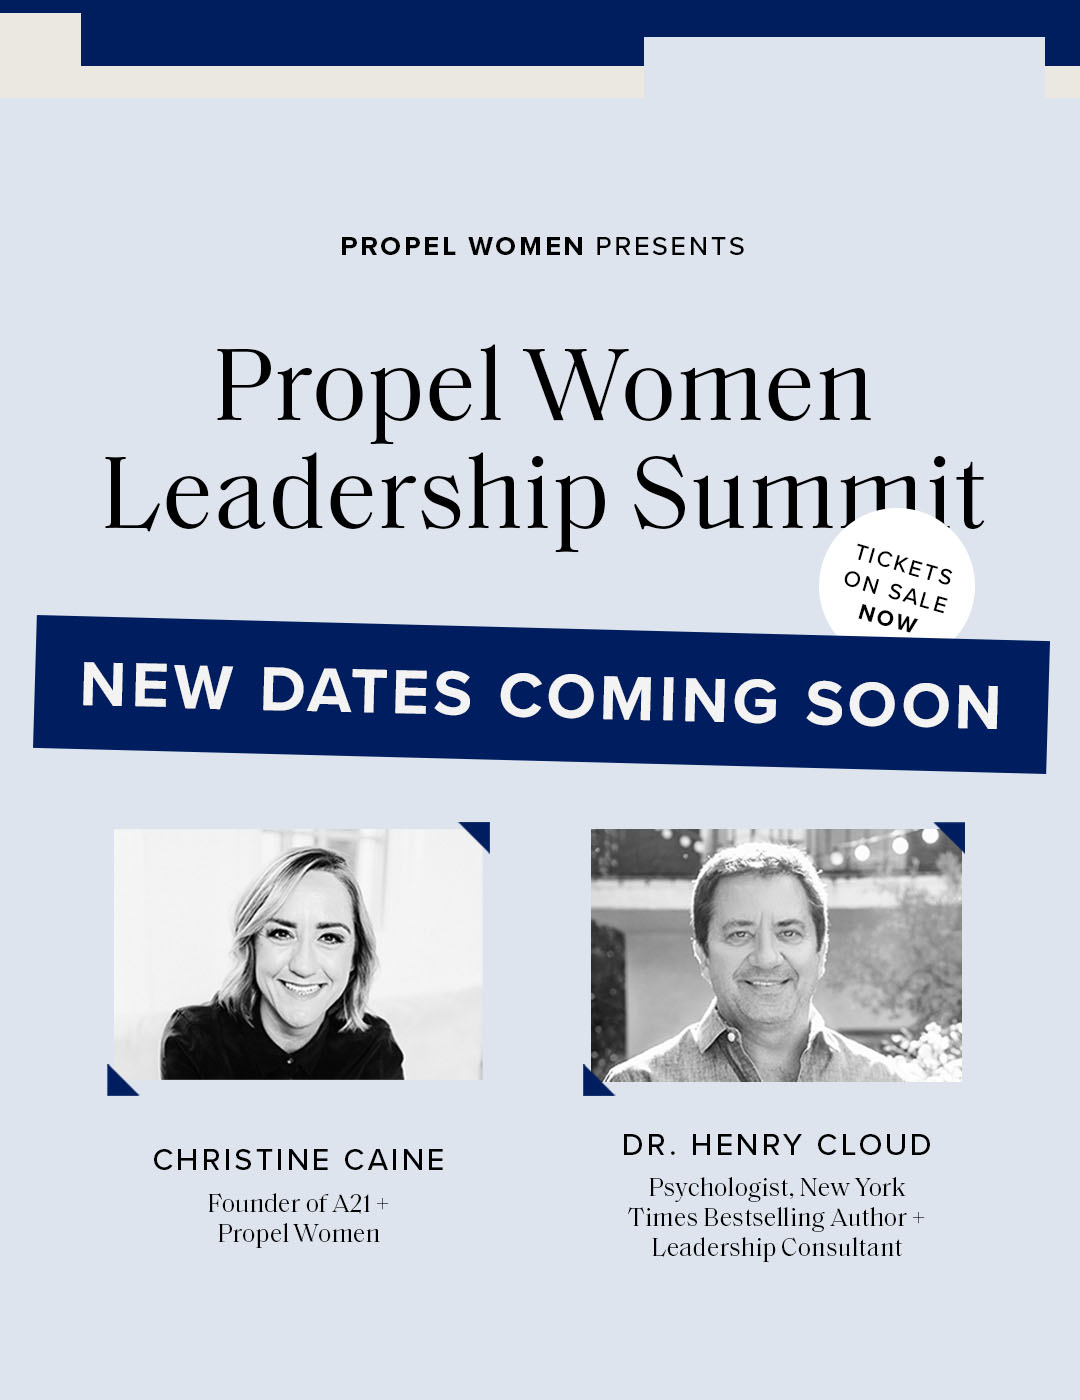 Propel Leadership Summit Speakers